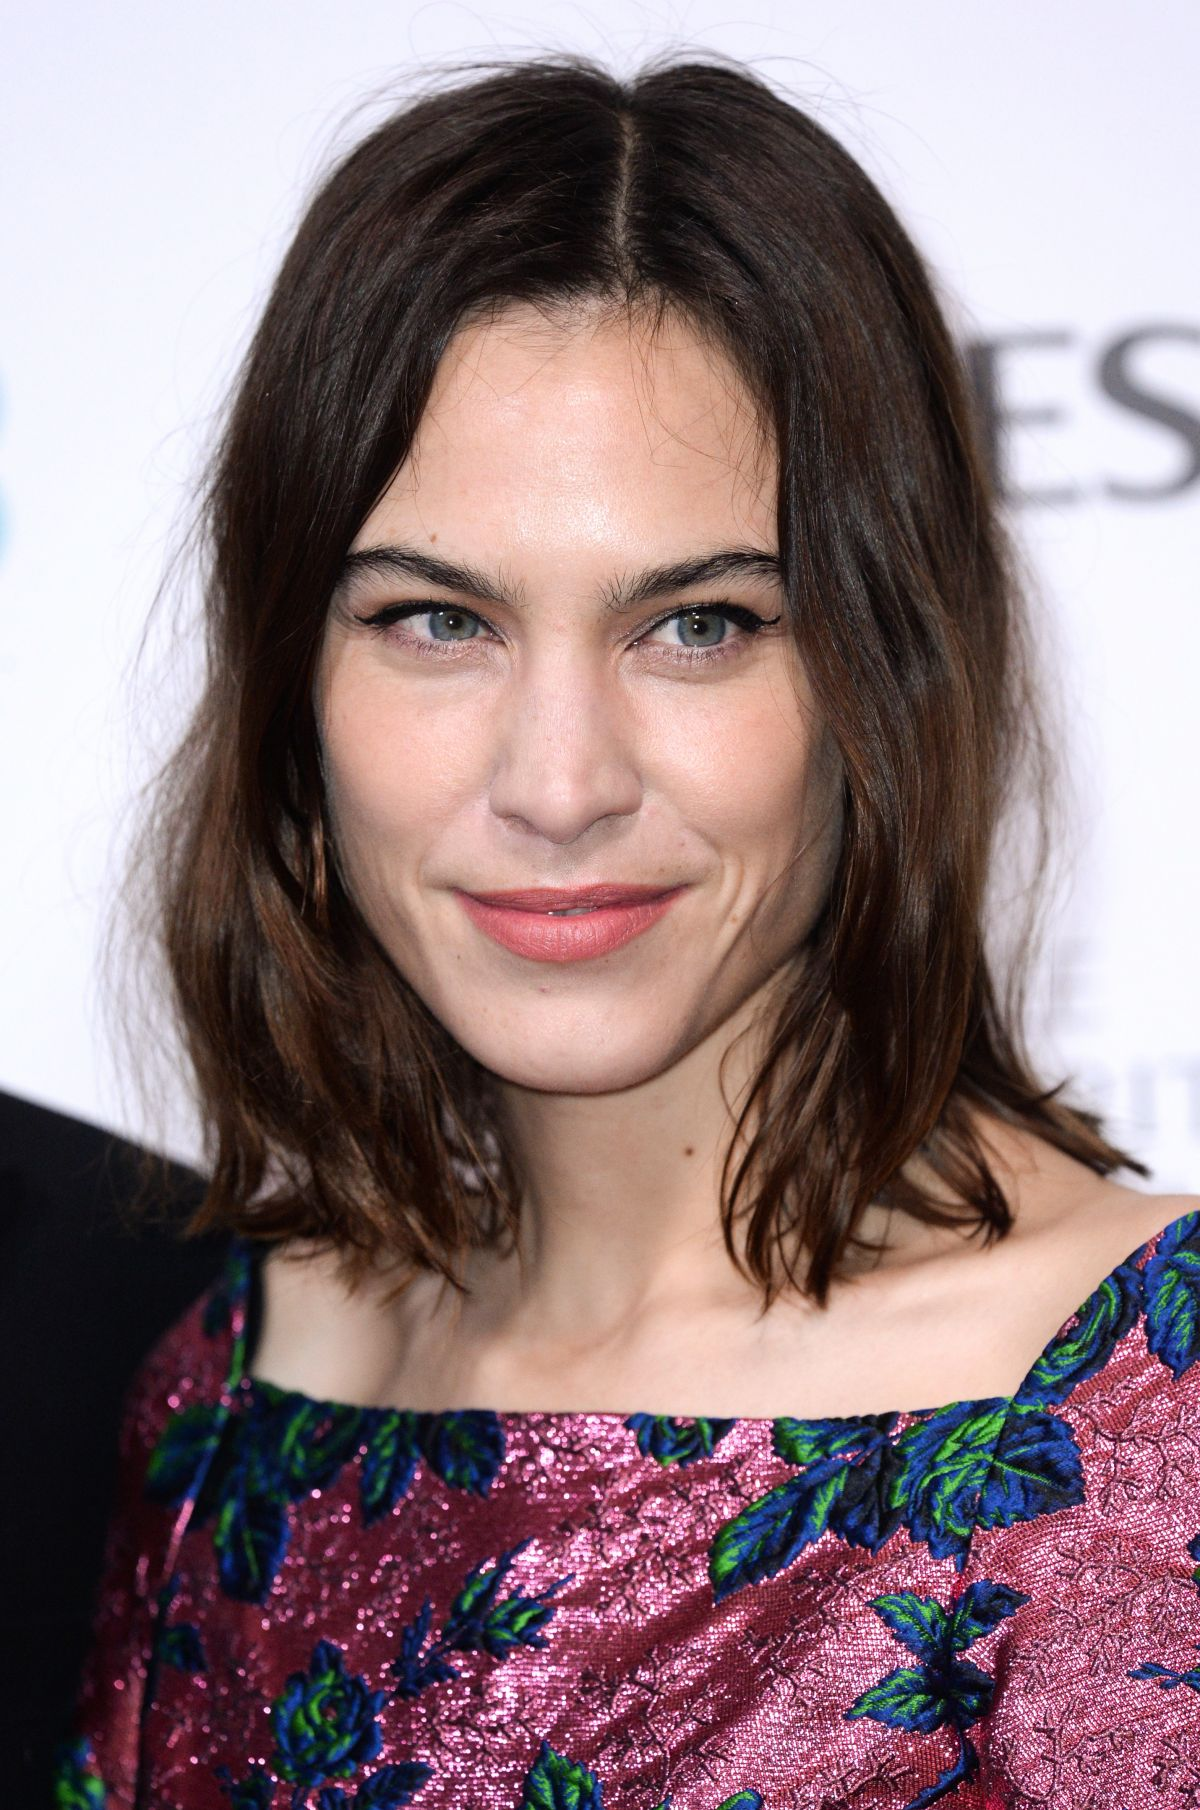 alexa chung at nespresso bafta nominees party in london 02 09 2019 hawtcelebs. Black Bedroom Furniture Sets. Home Design Ideas